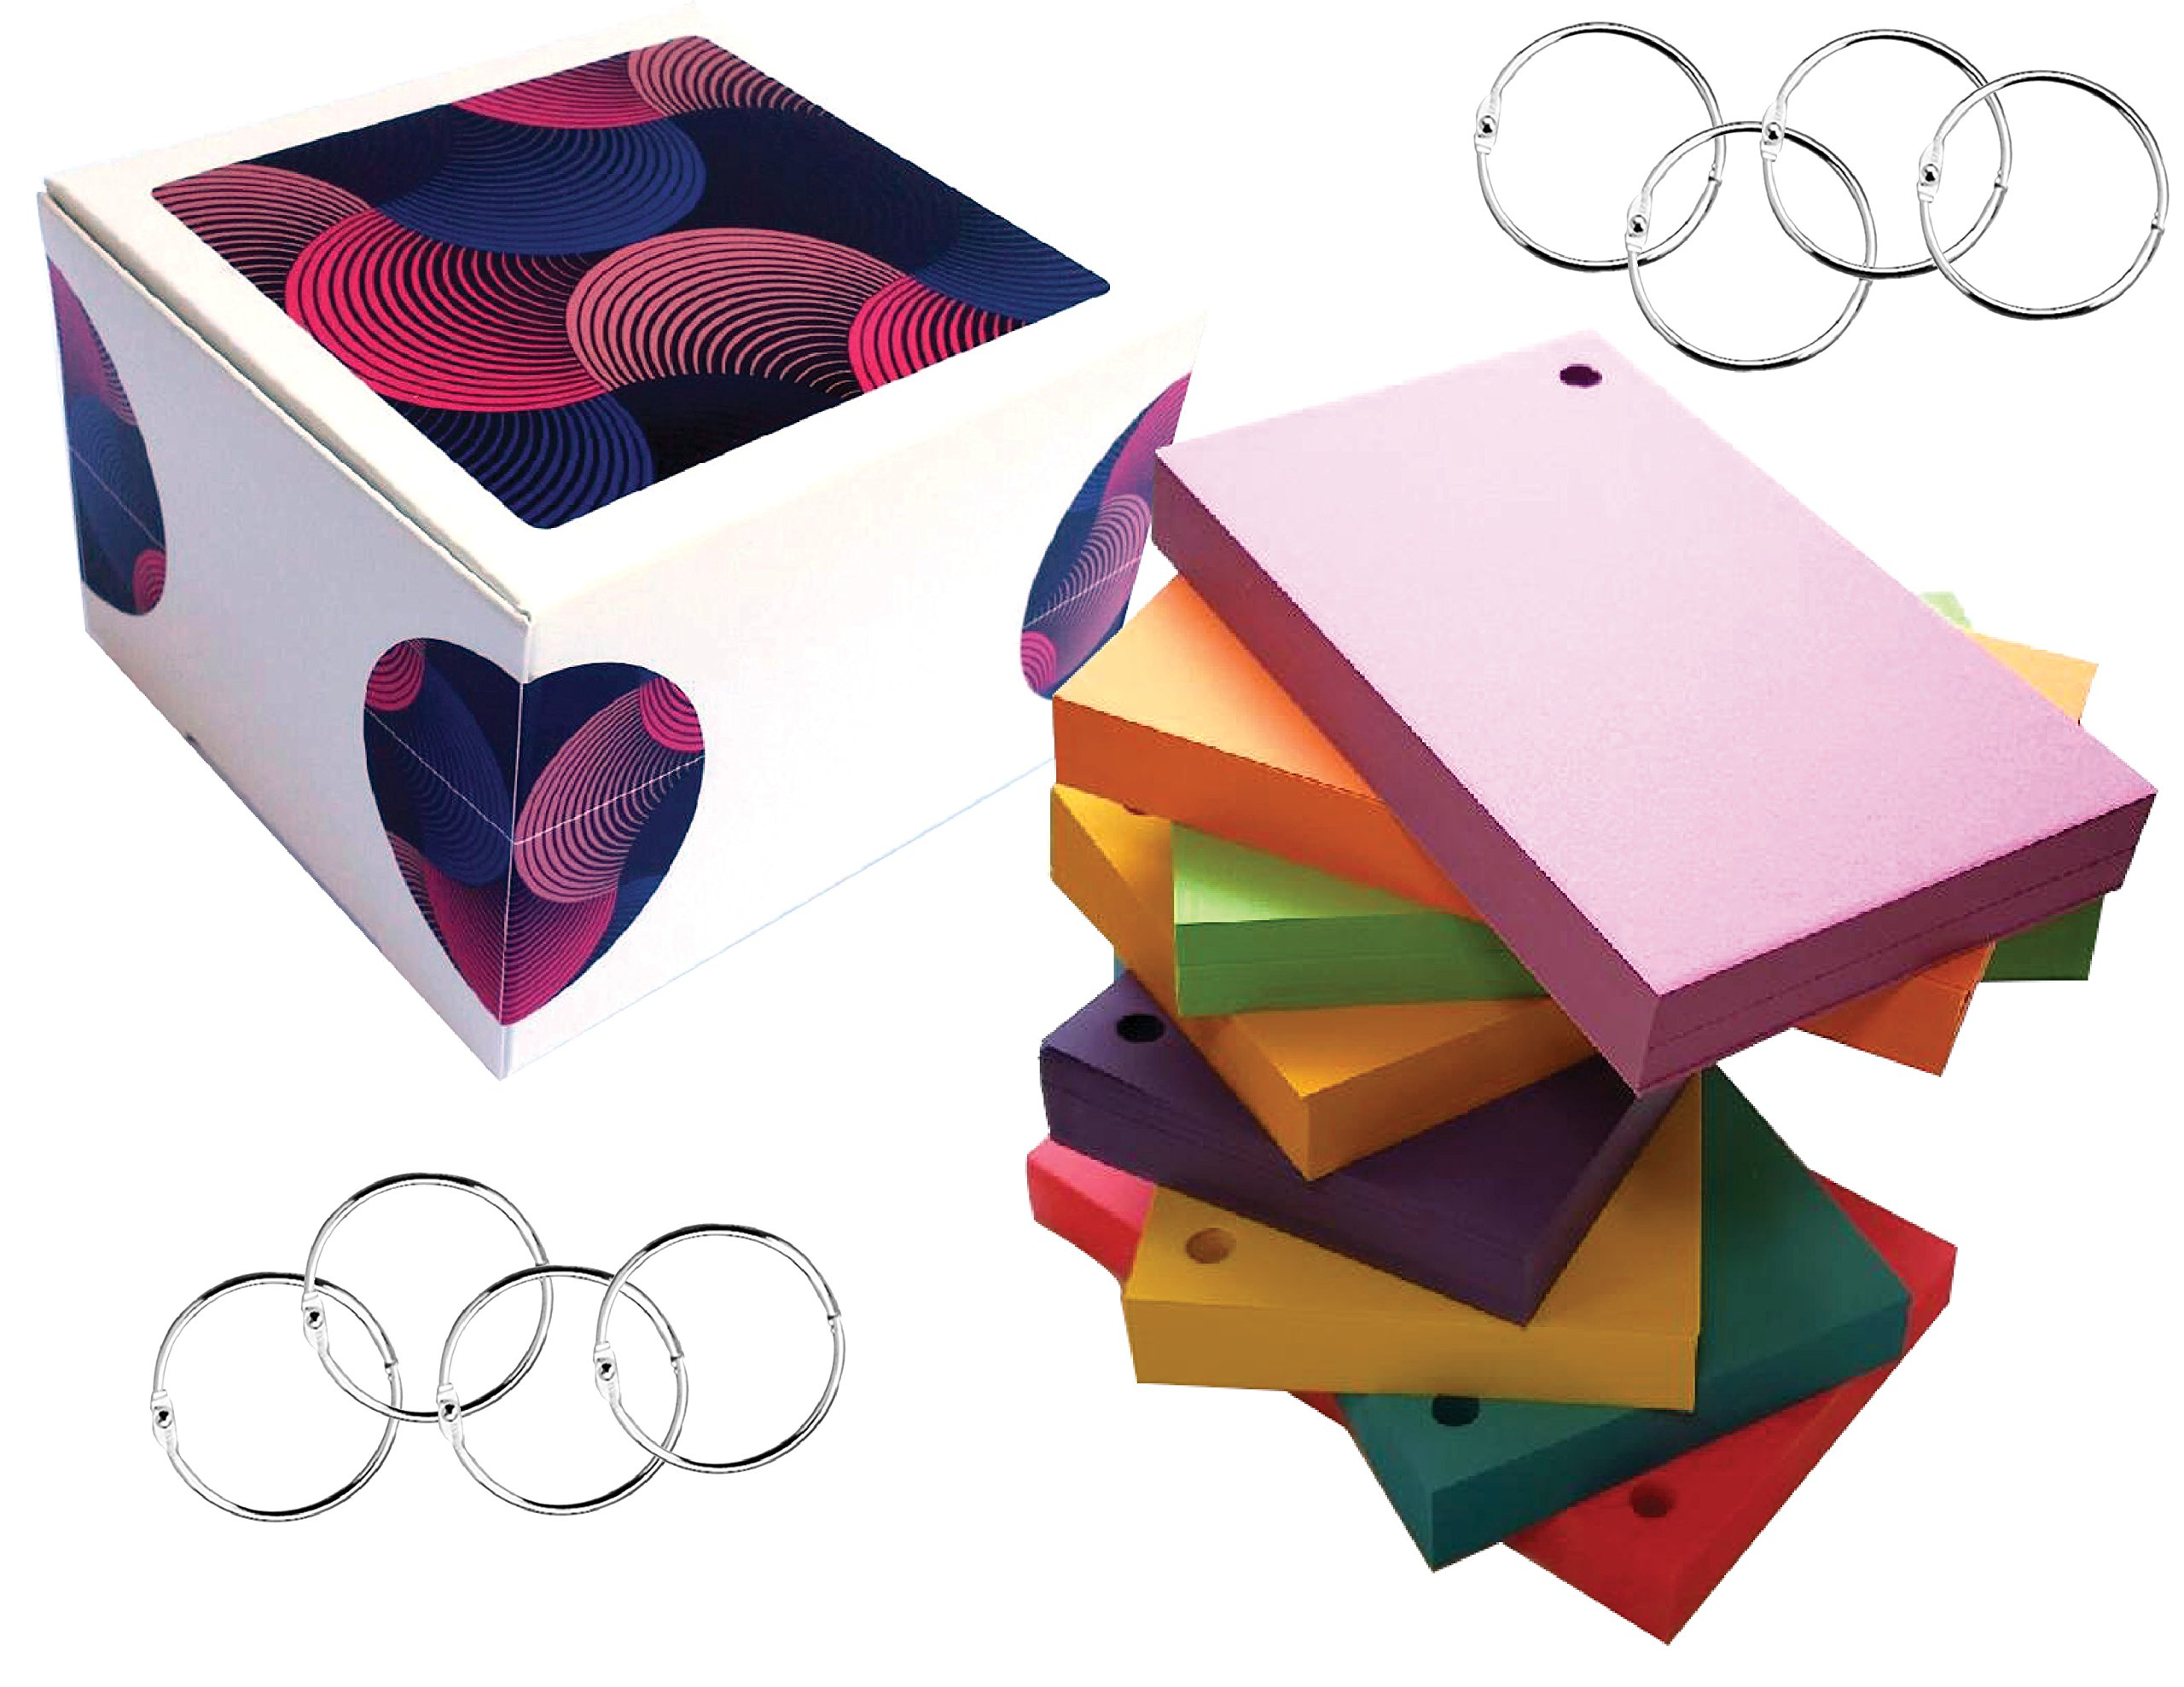 Debra Dale Designs - 3'' X 5'' Inch Hole Punched Cards - Standard Smooth 80# Card Stock - 50 Each Of Eight Astrobright Colors - 8 Metal 1.5 Inch Binder Rings by DEBRADALE DESIGNS